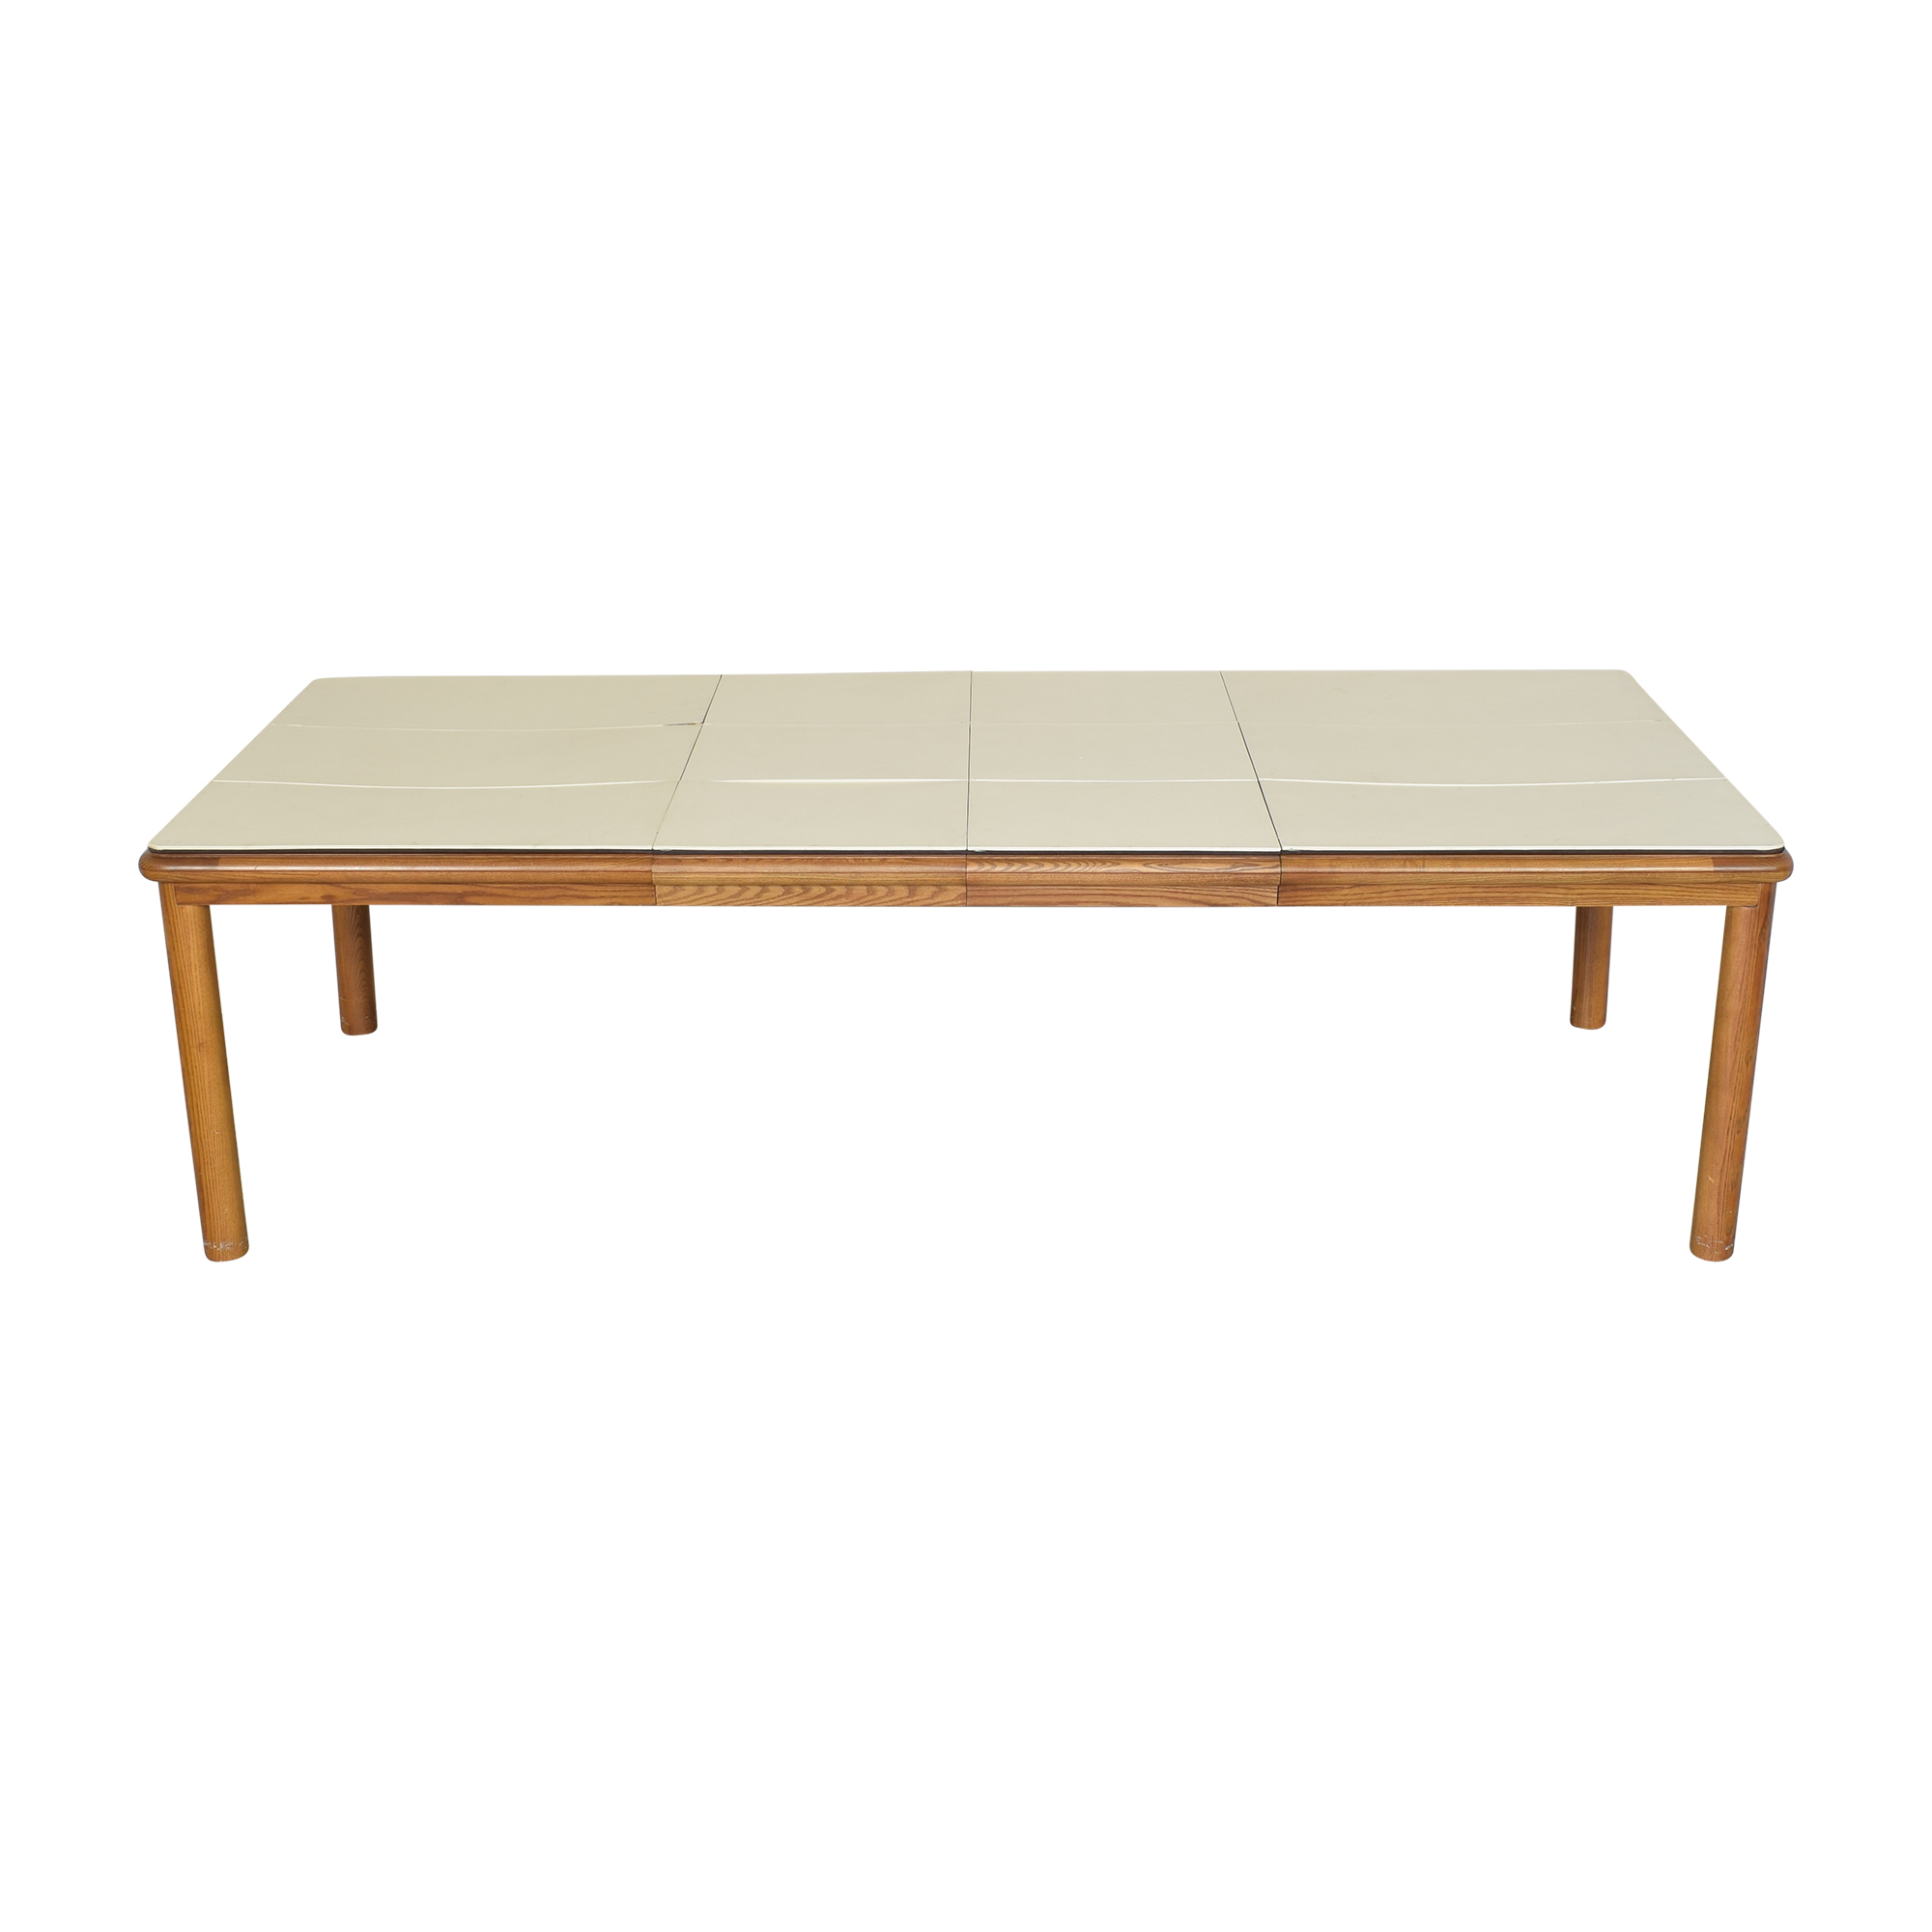 Thomasville Thomasville Extendable Dining Table Brown